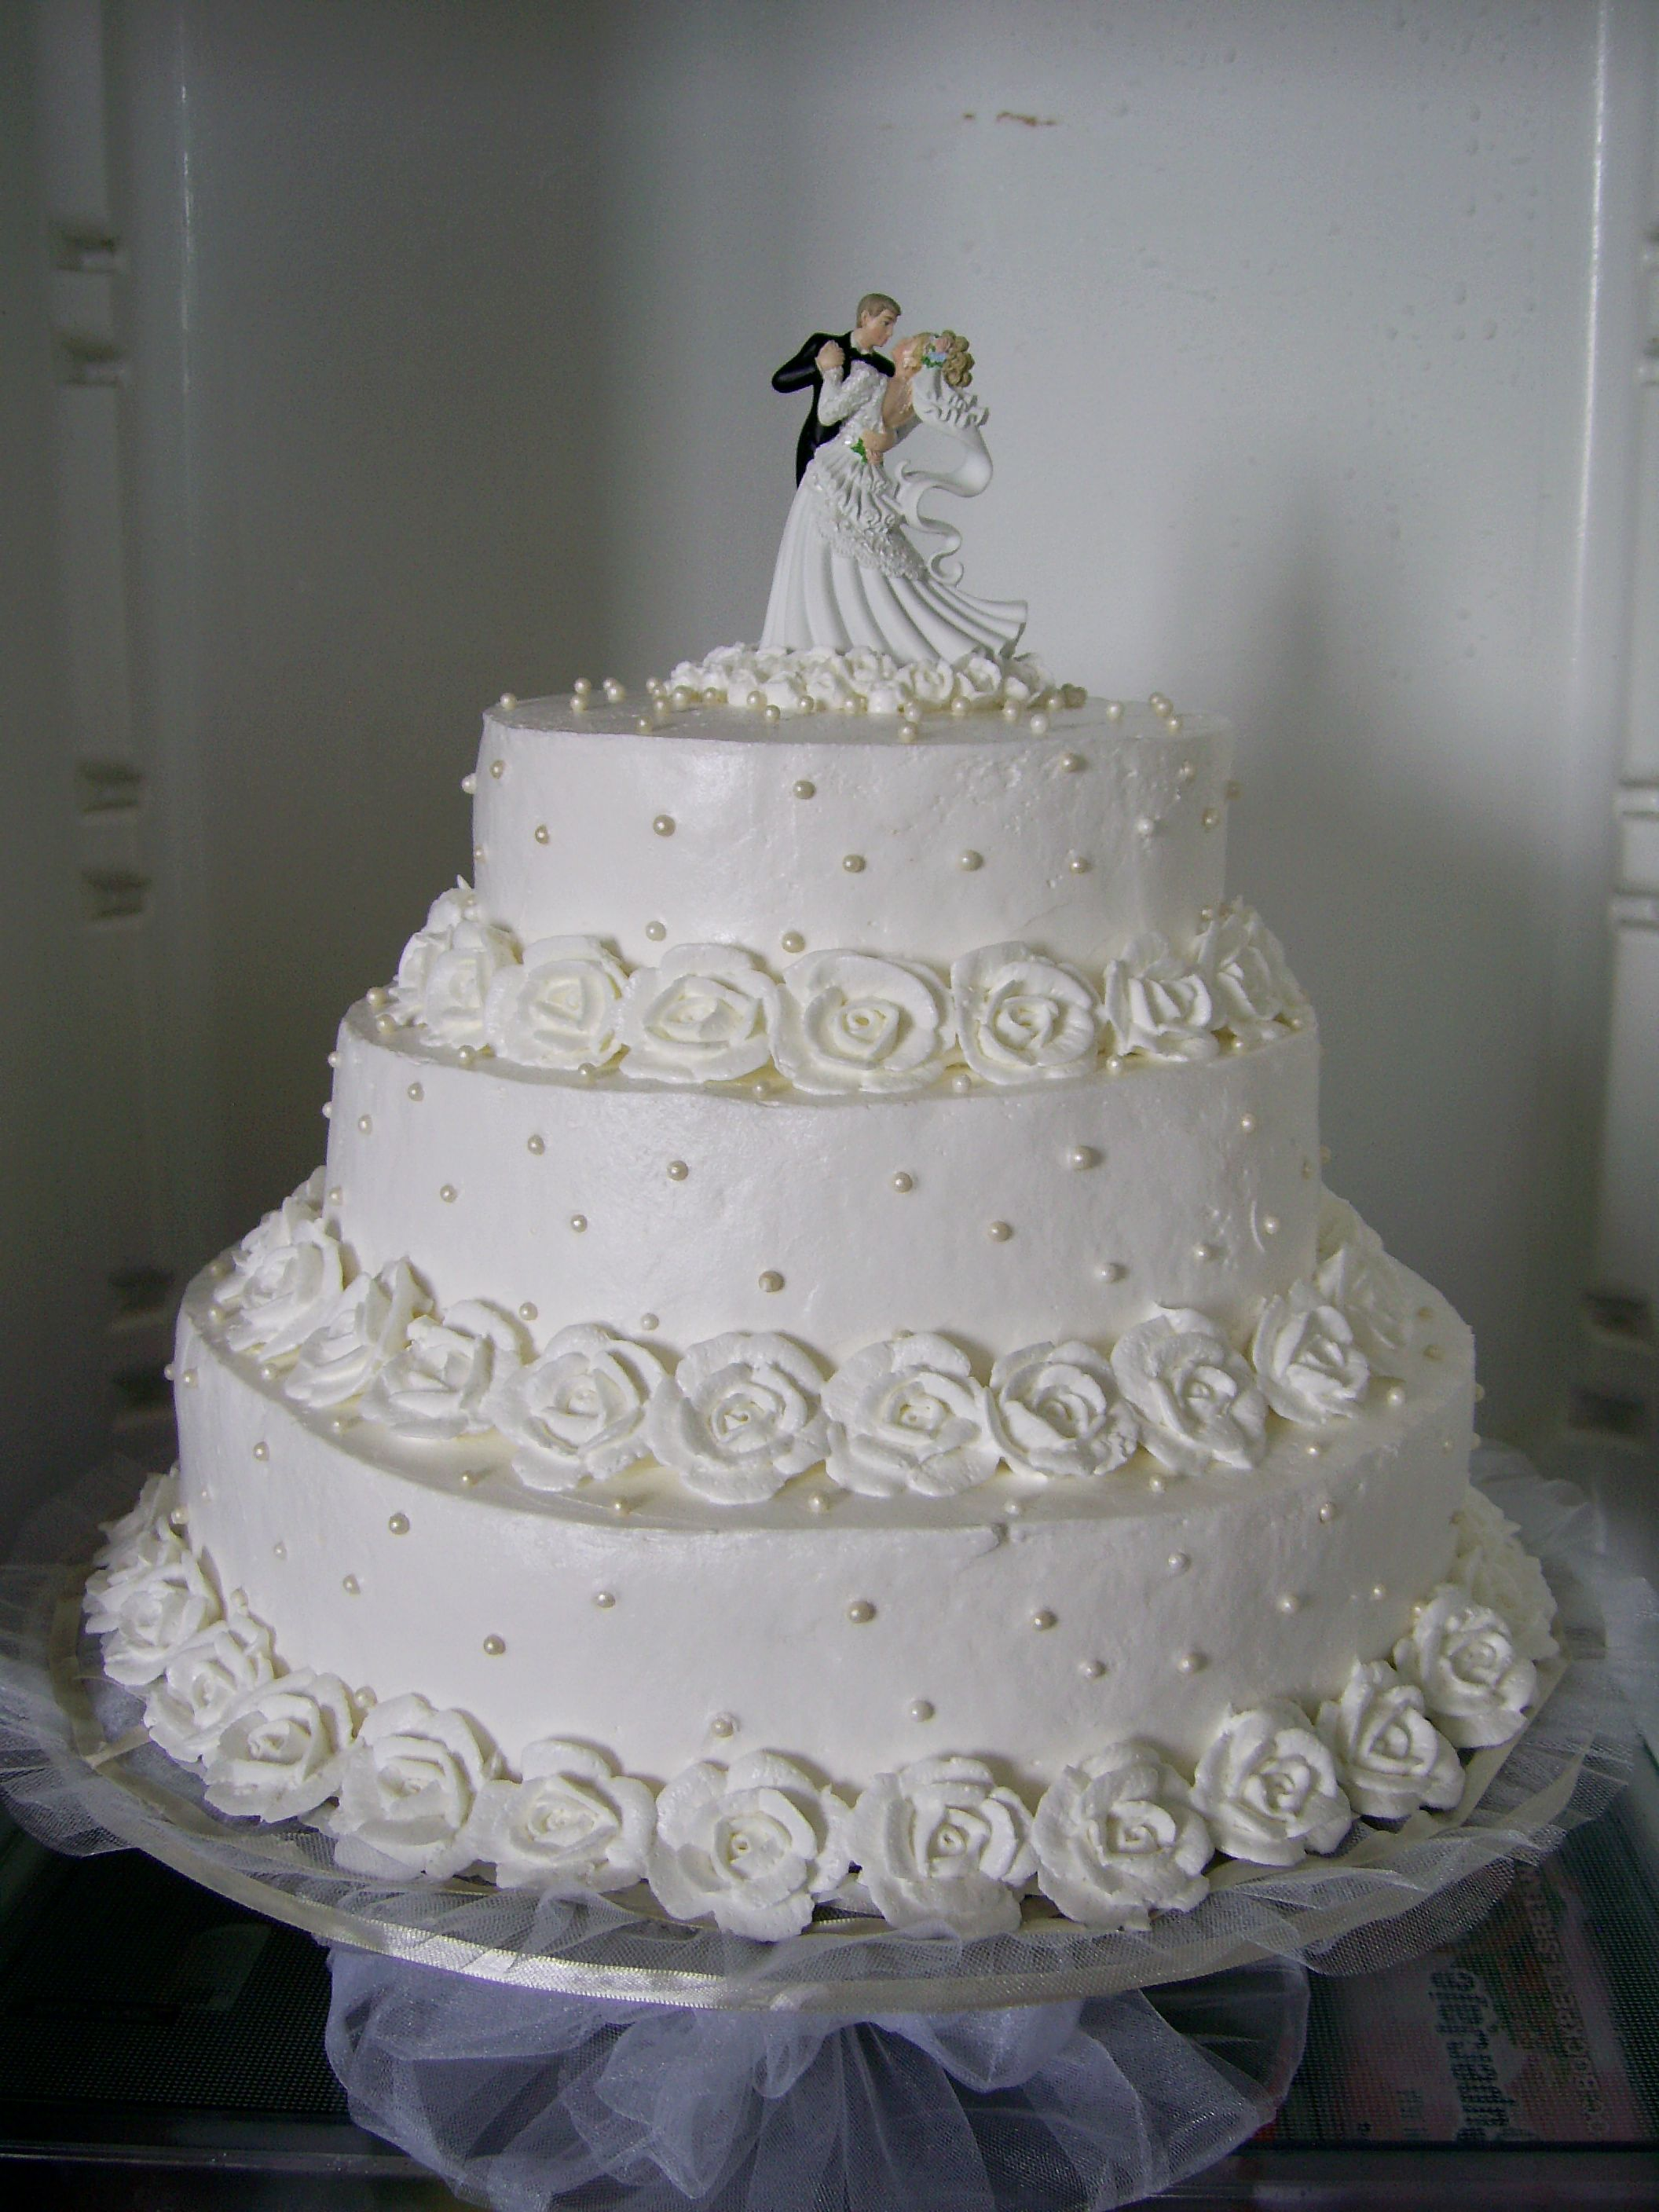 Cake Designs With Whipped Cream : white wedding cake with roses of whipped cream Cakes ...